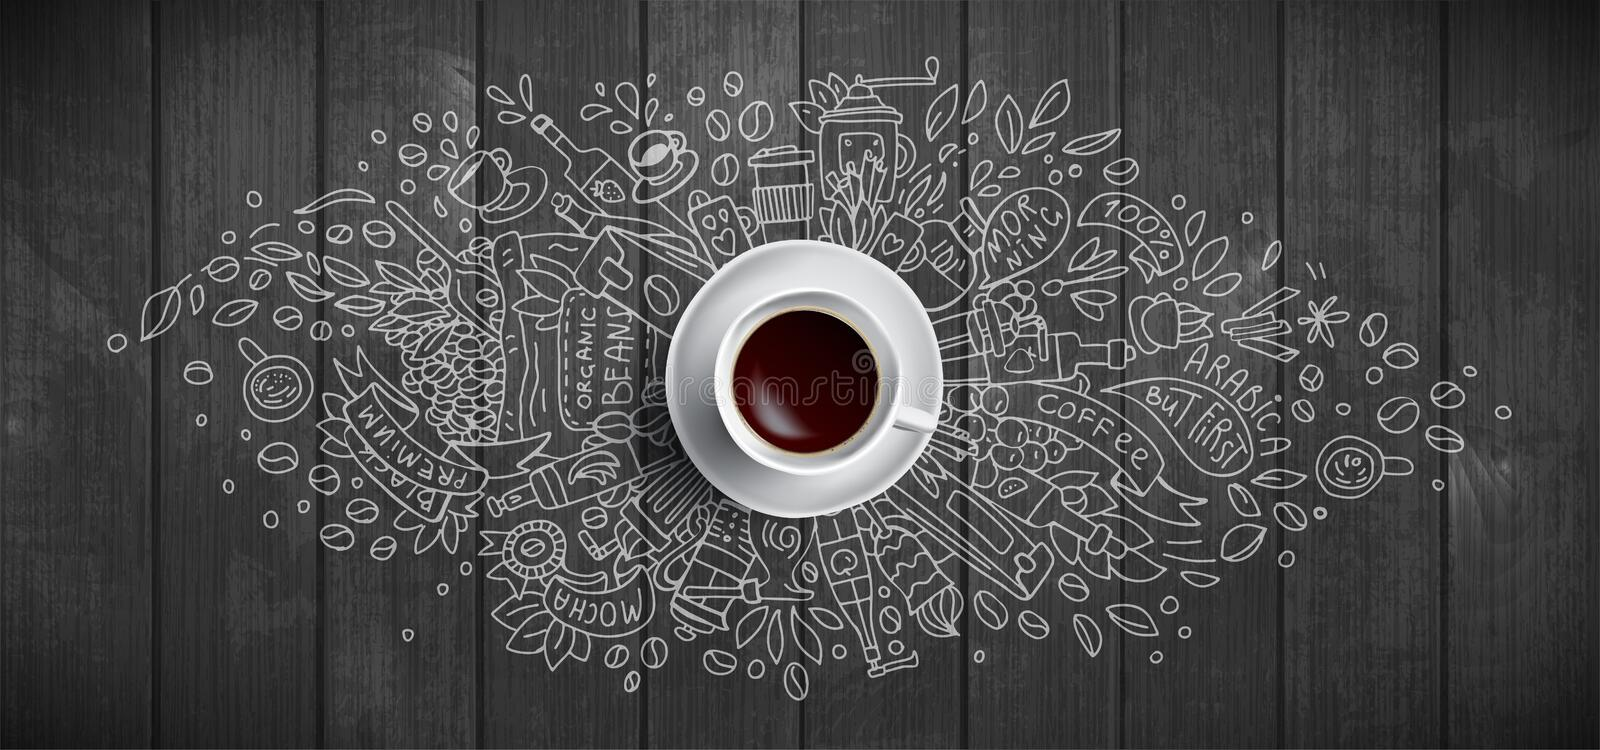 Coffee concept on wooden background - white coffee cup, top view with doodle illustration about coffee, beans, morning. Espresso cafe, breakfast. Morning vector illustration